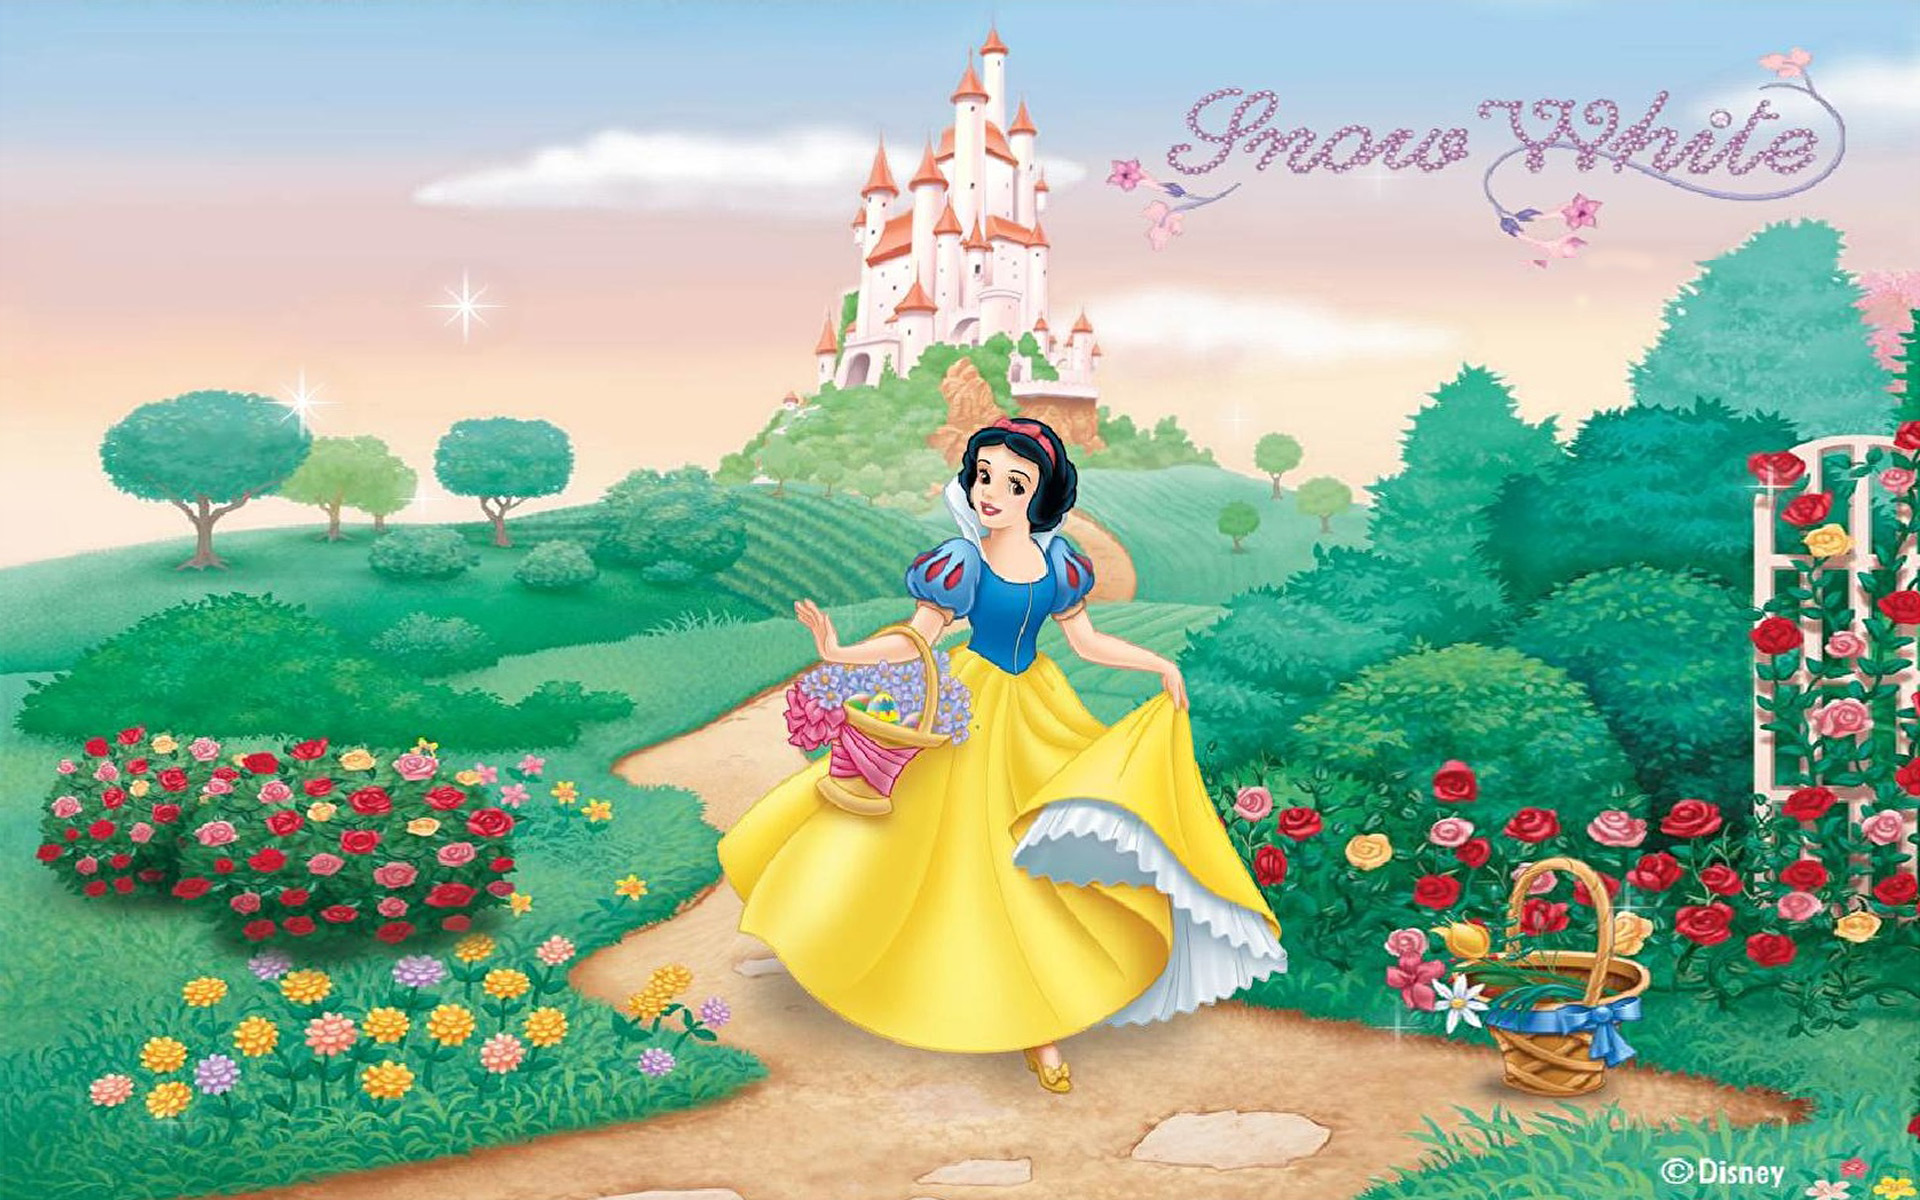 Castle Of Princess Snow White Garden Harvesting Flowers